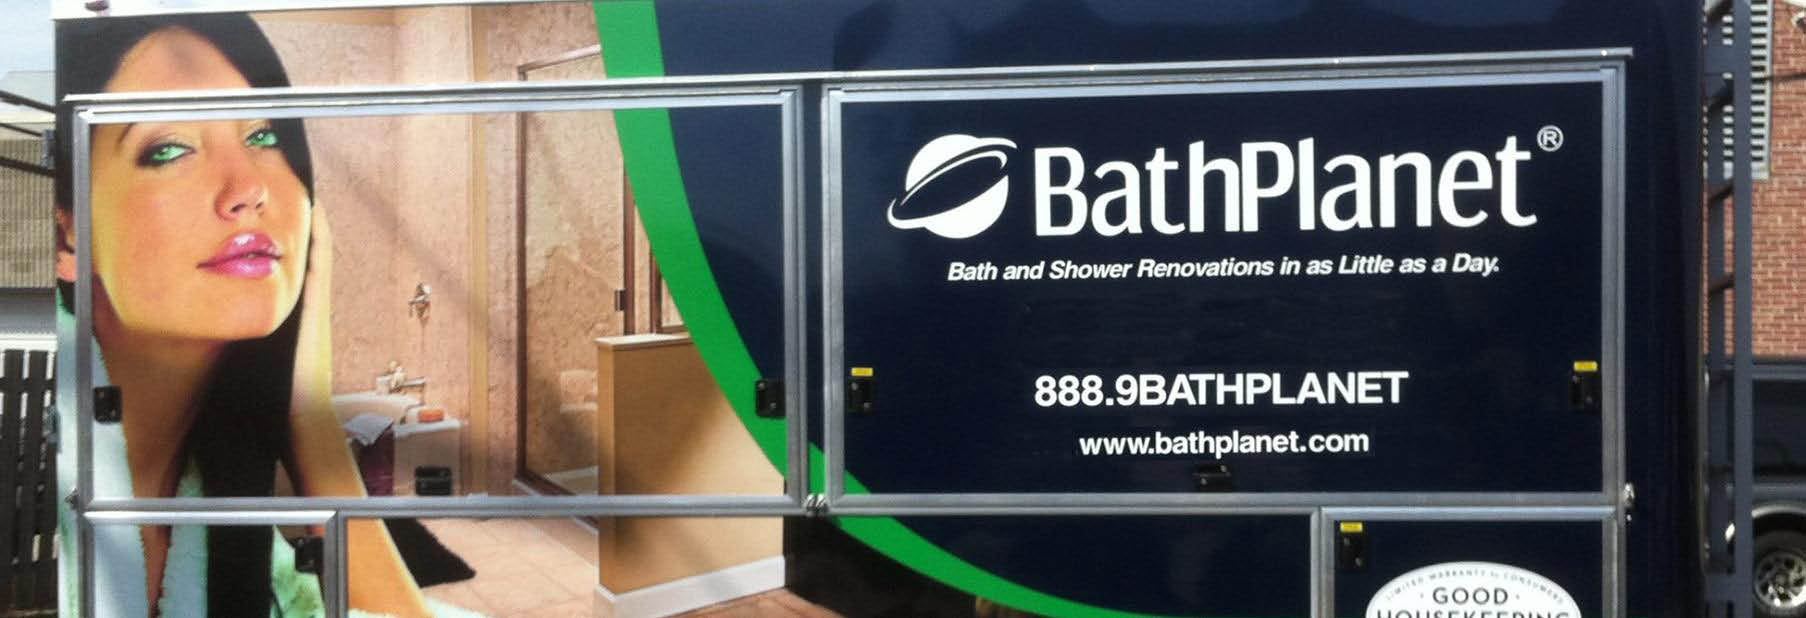 Bath Planet Milwaukee, WI banner specializing in Bath to shower conversion.